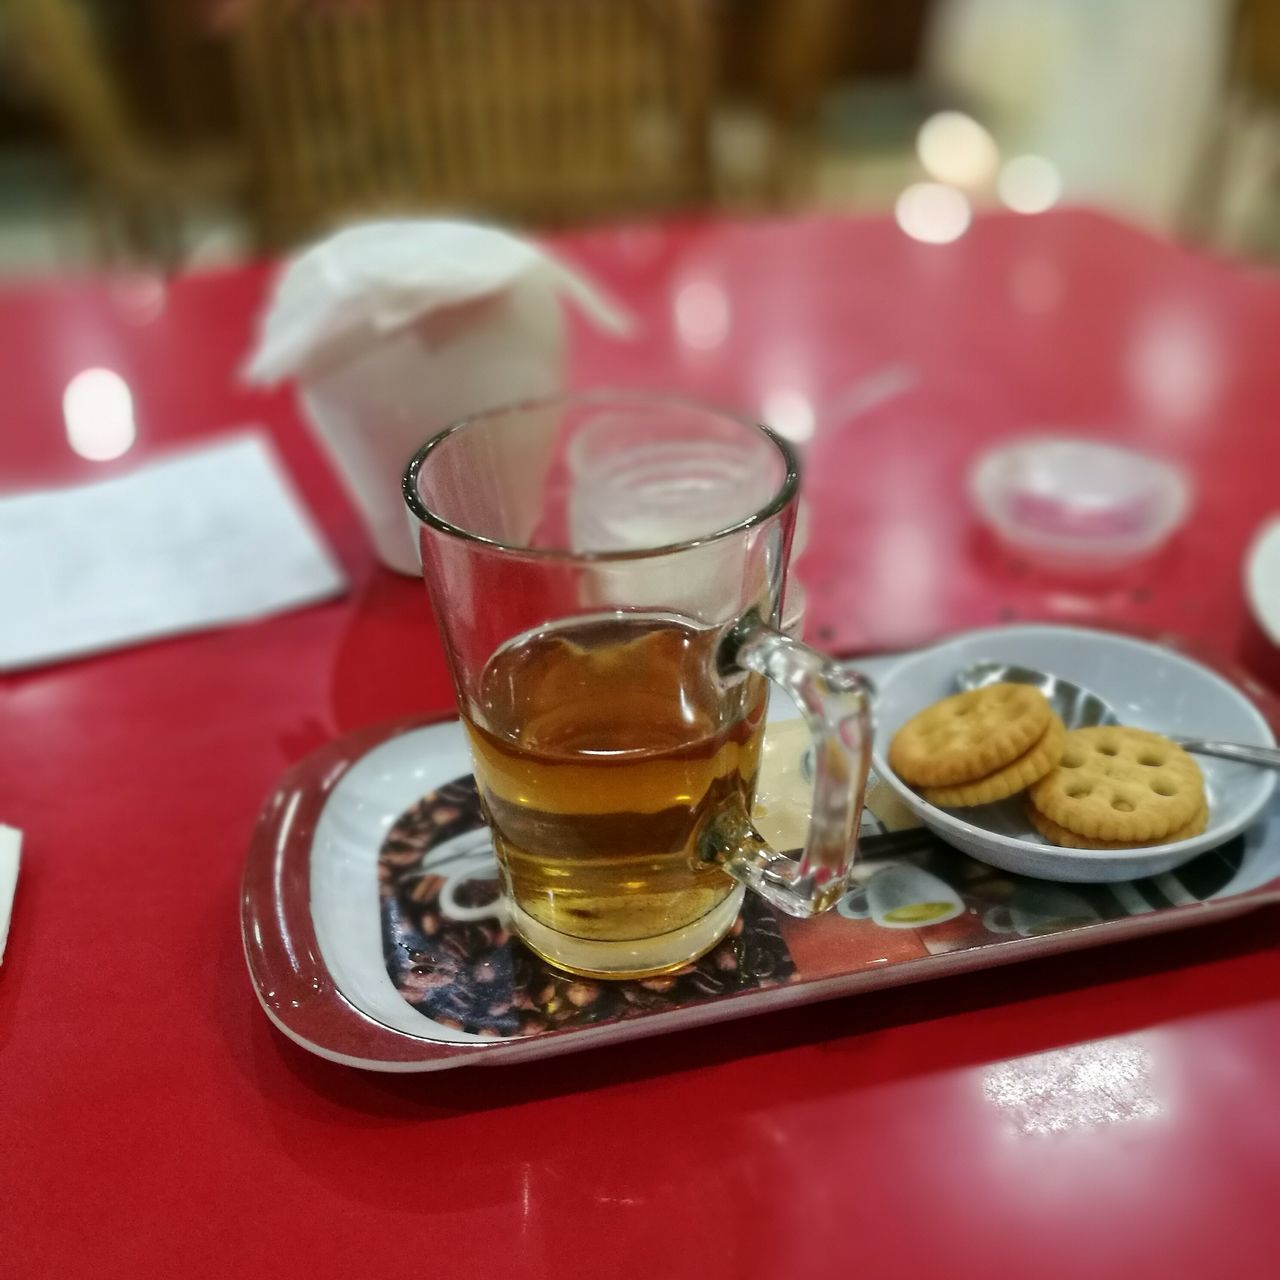 Jasmin tea Table Drink Drinking Glass Tea - Hot Drink Plate Sweet Food Food No People Indoors  Close-up Alcohol Freshness Day